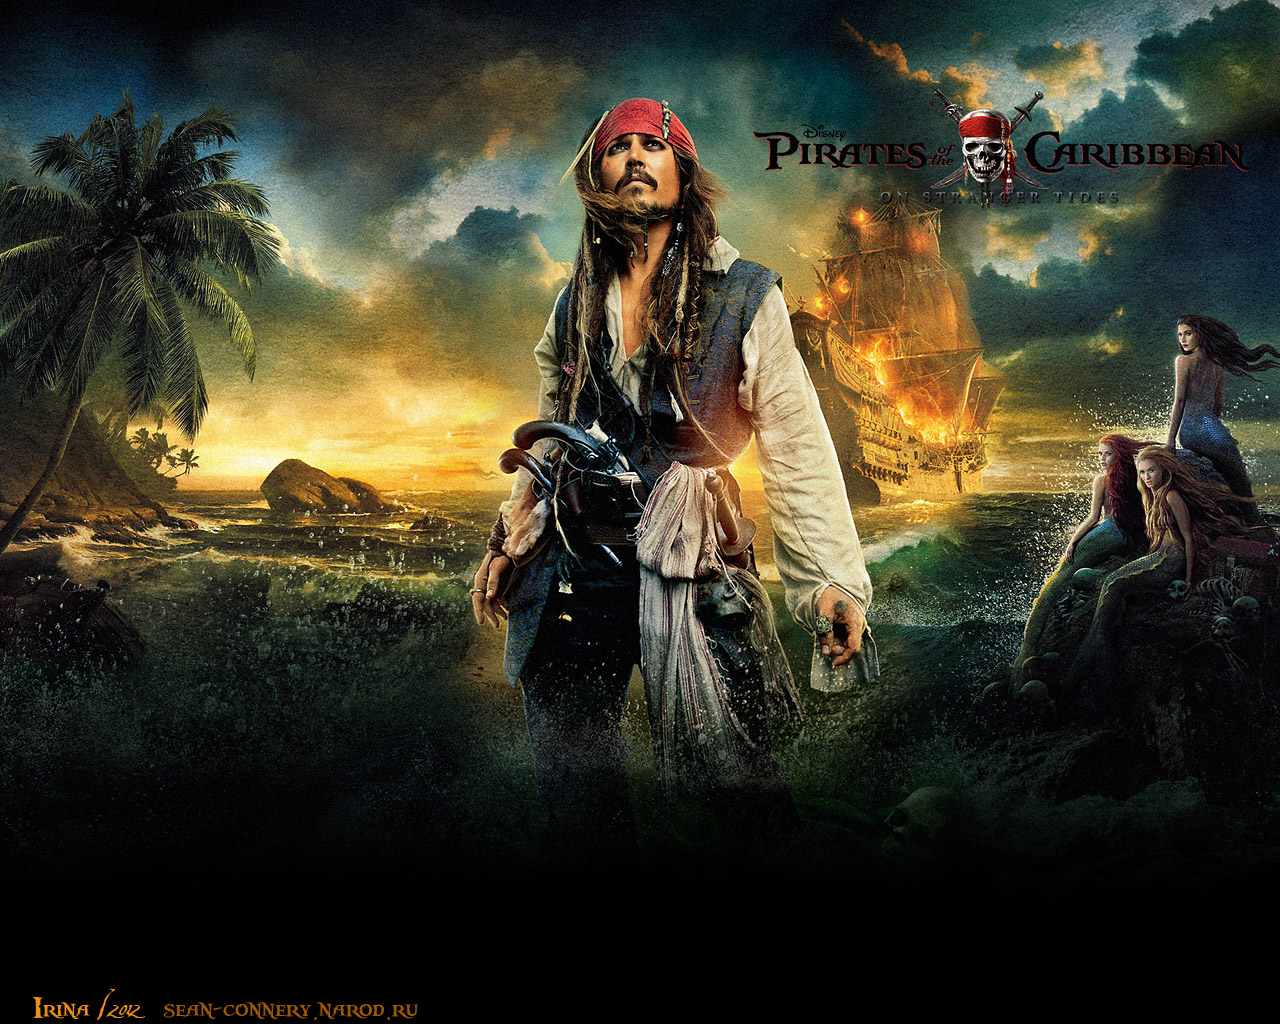 an analysis of the gender roles in pirates of the caribbean